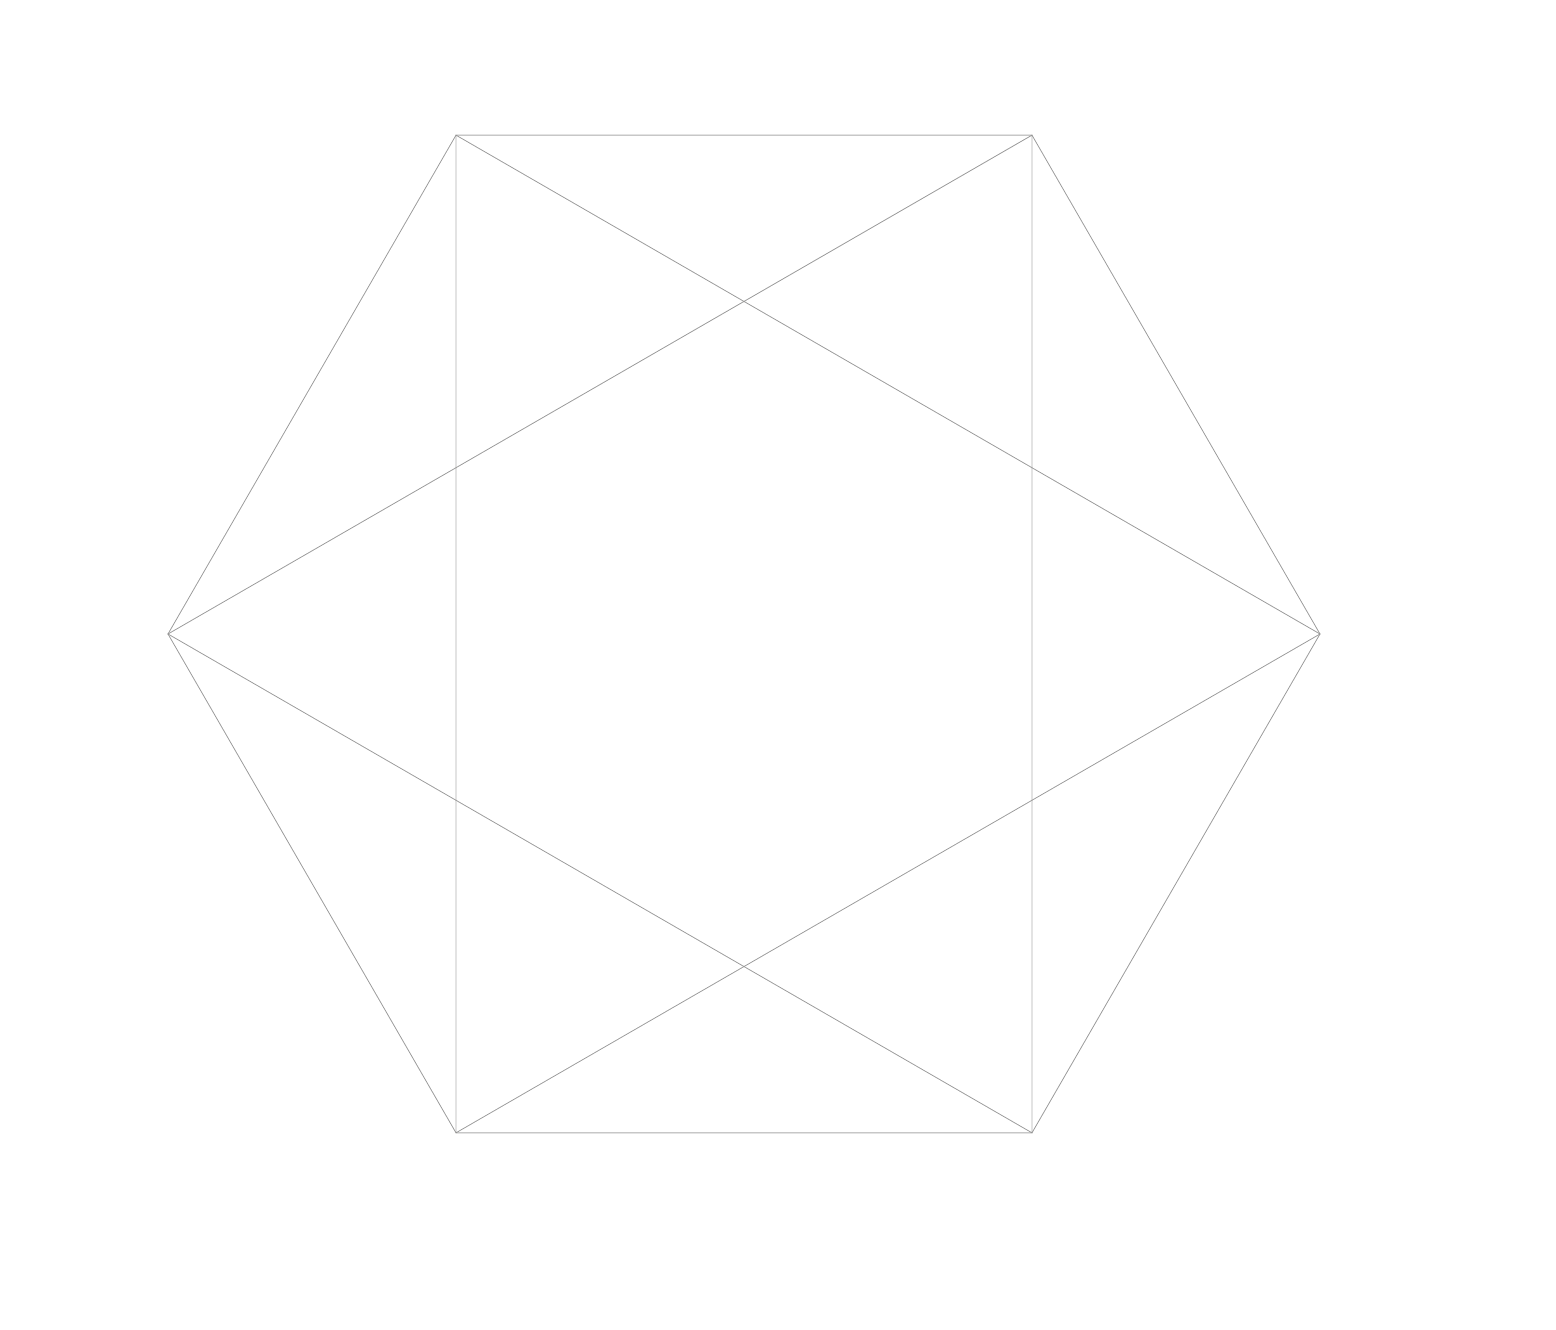 projects_Screen_Shot_2015-03-14_at_4.58.39_PM.png